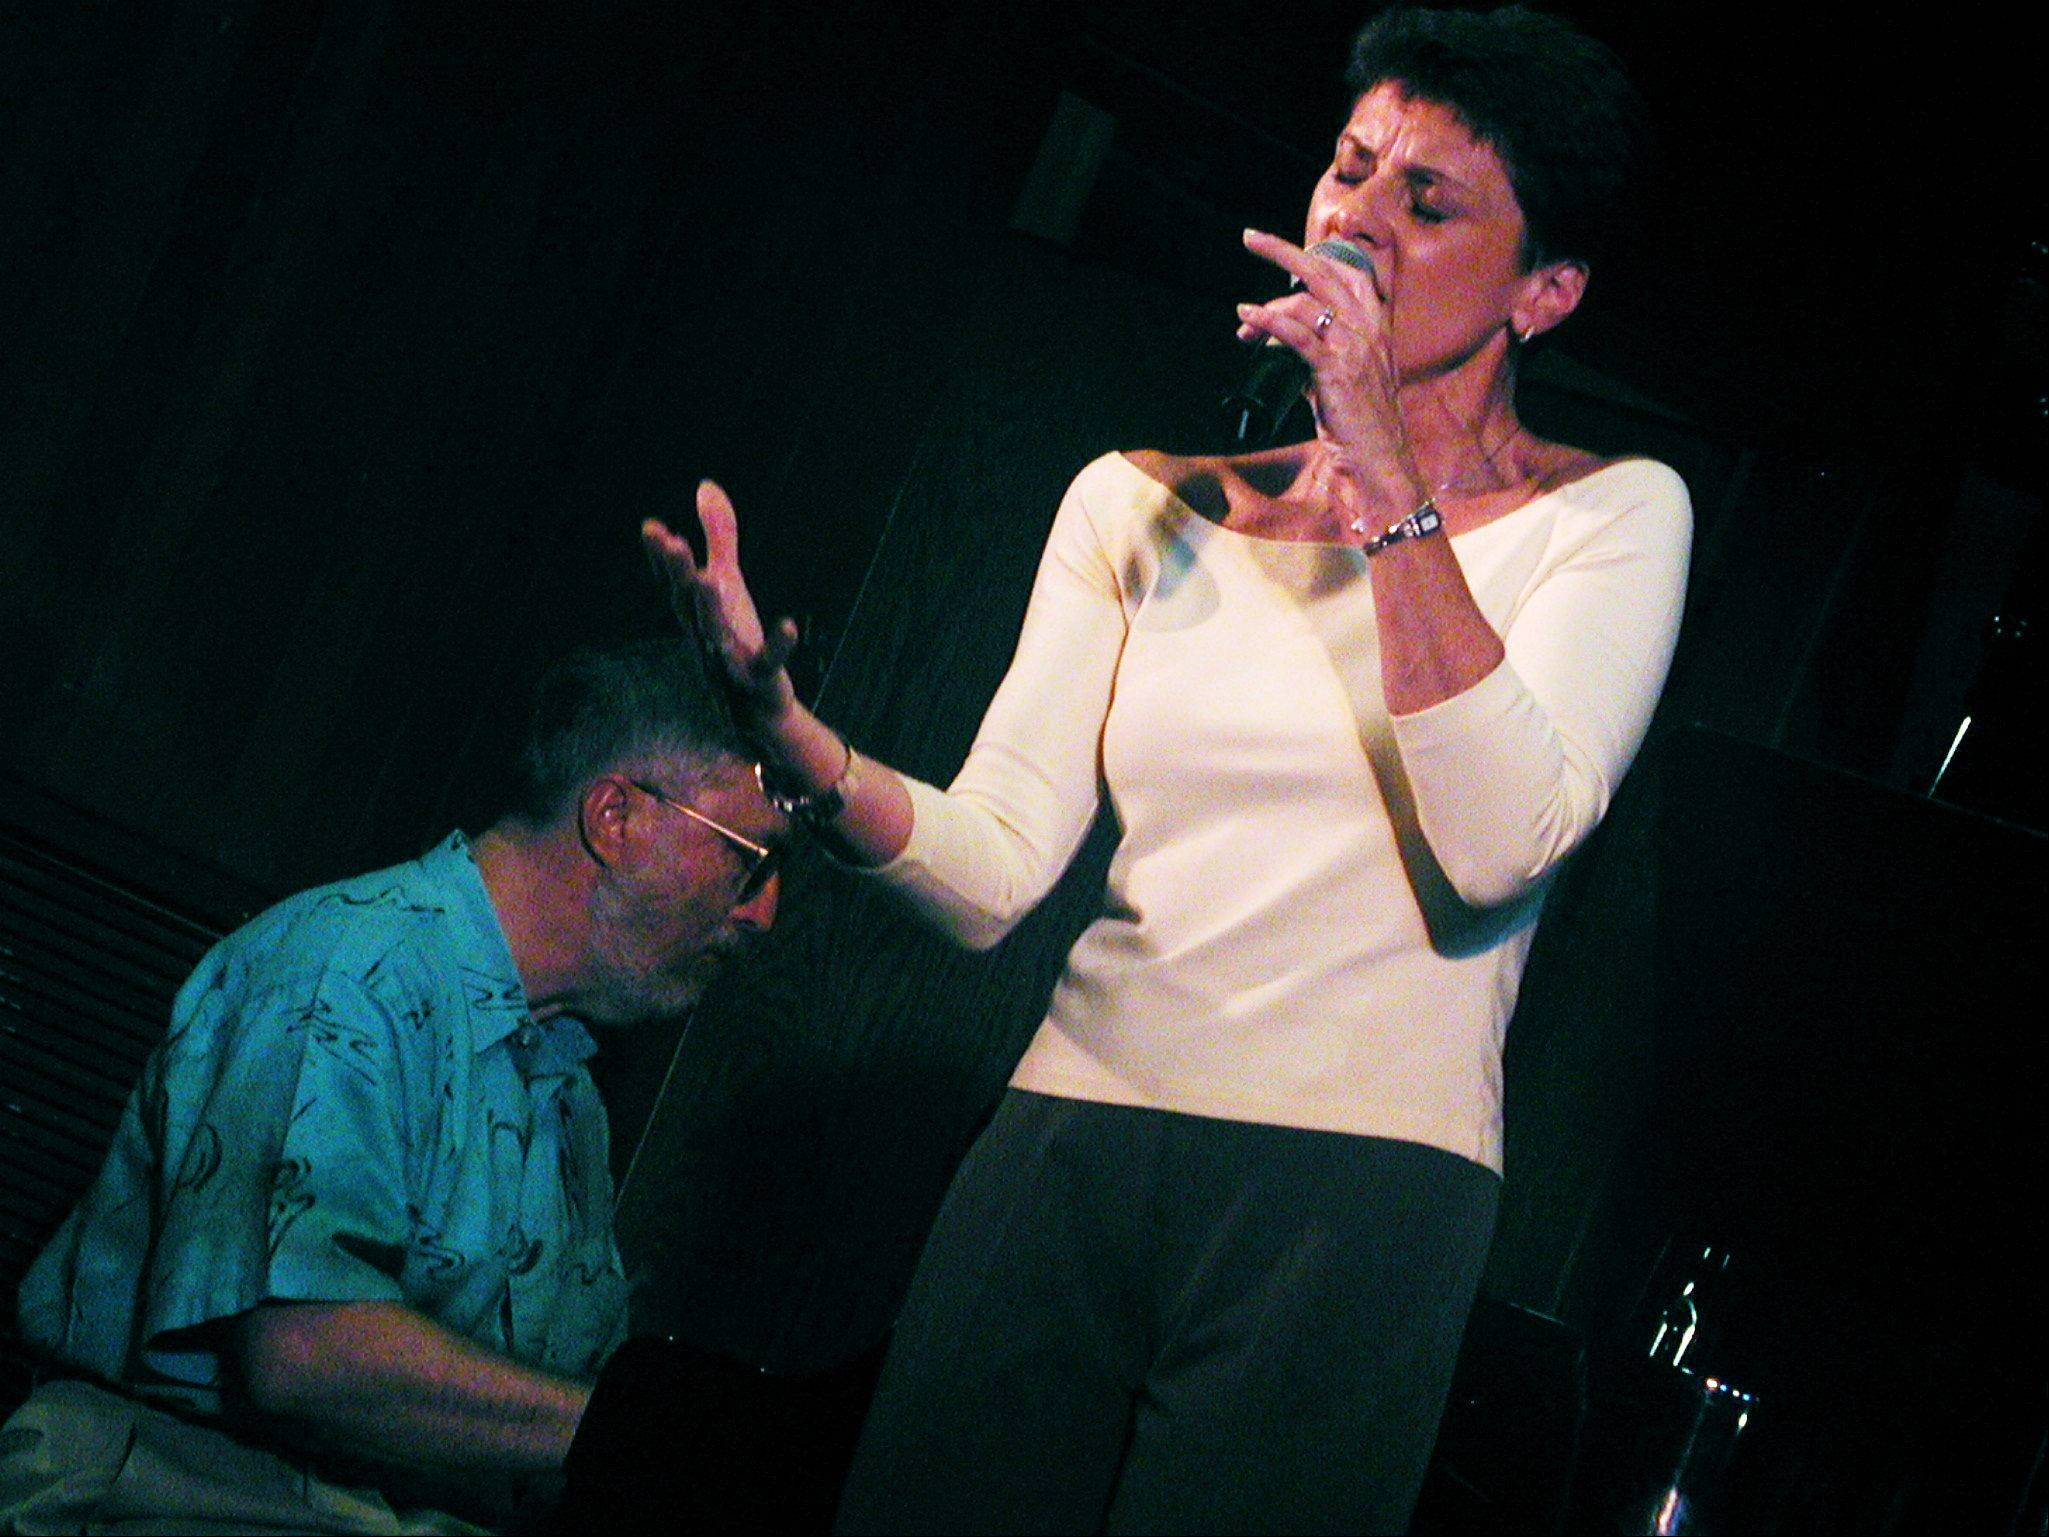 Jazz vocalist Janice Borla and other performers and educators lead classes and workshops by day and perform by night during her summer vocal jazz camp in Naperville.